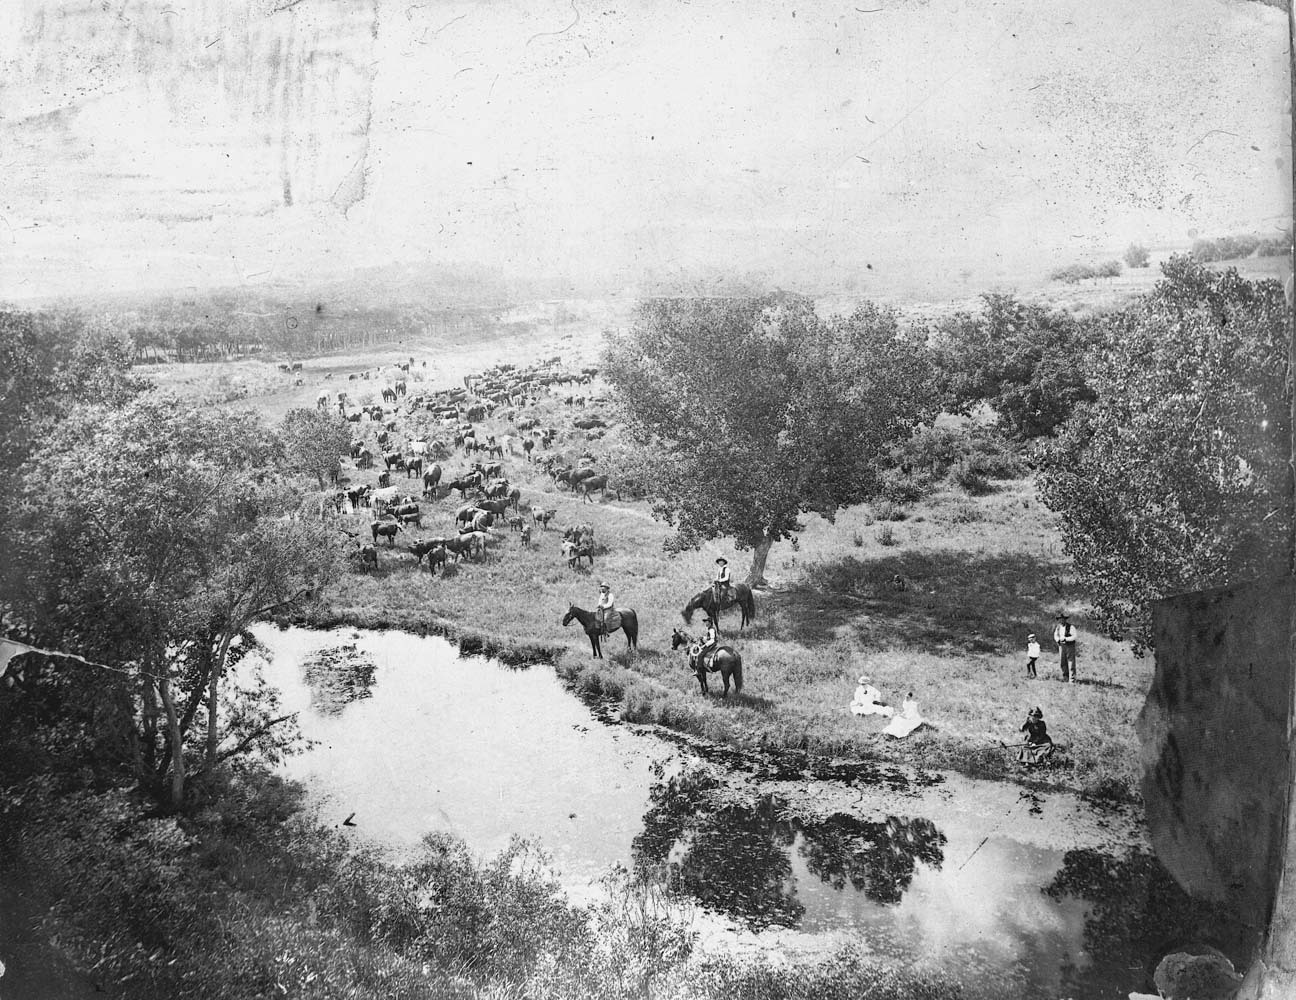 Cattle grazing in Comanche County, Kansas